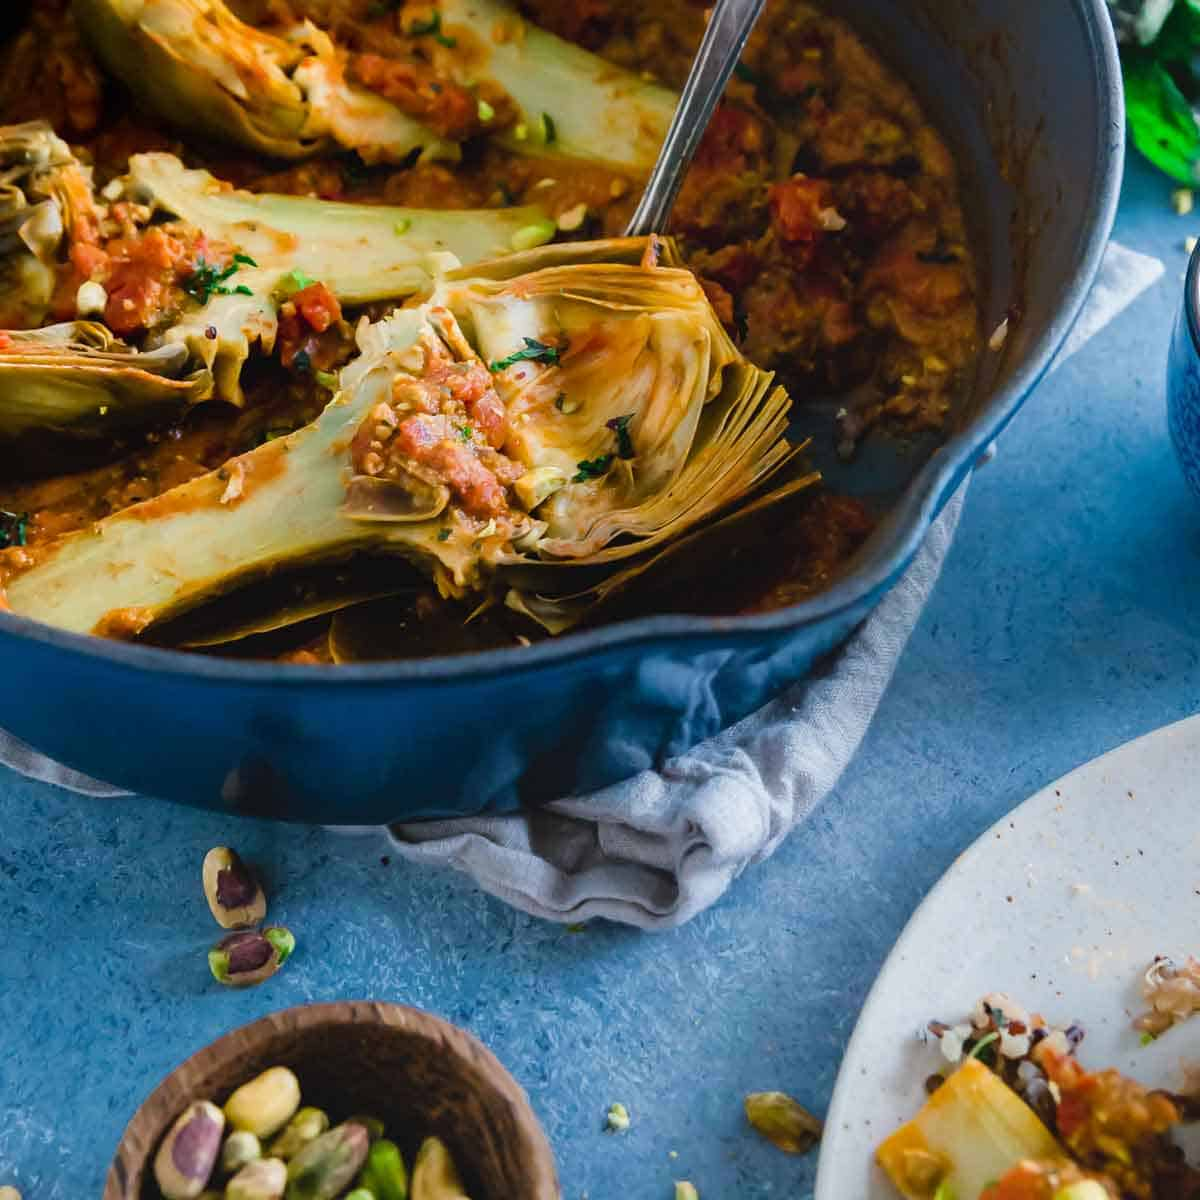 Once you braise artichokes, you'll never want to cook them another way again. Perfectly tender, full of flavor from reduced tomatoes, white wine and a deliciously nutty pistachio pesto.